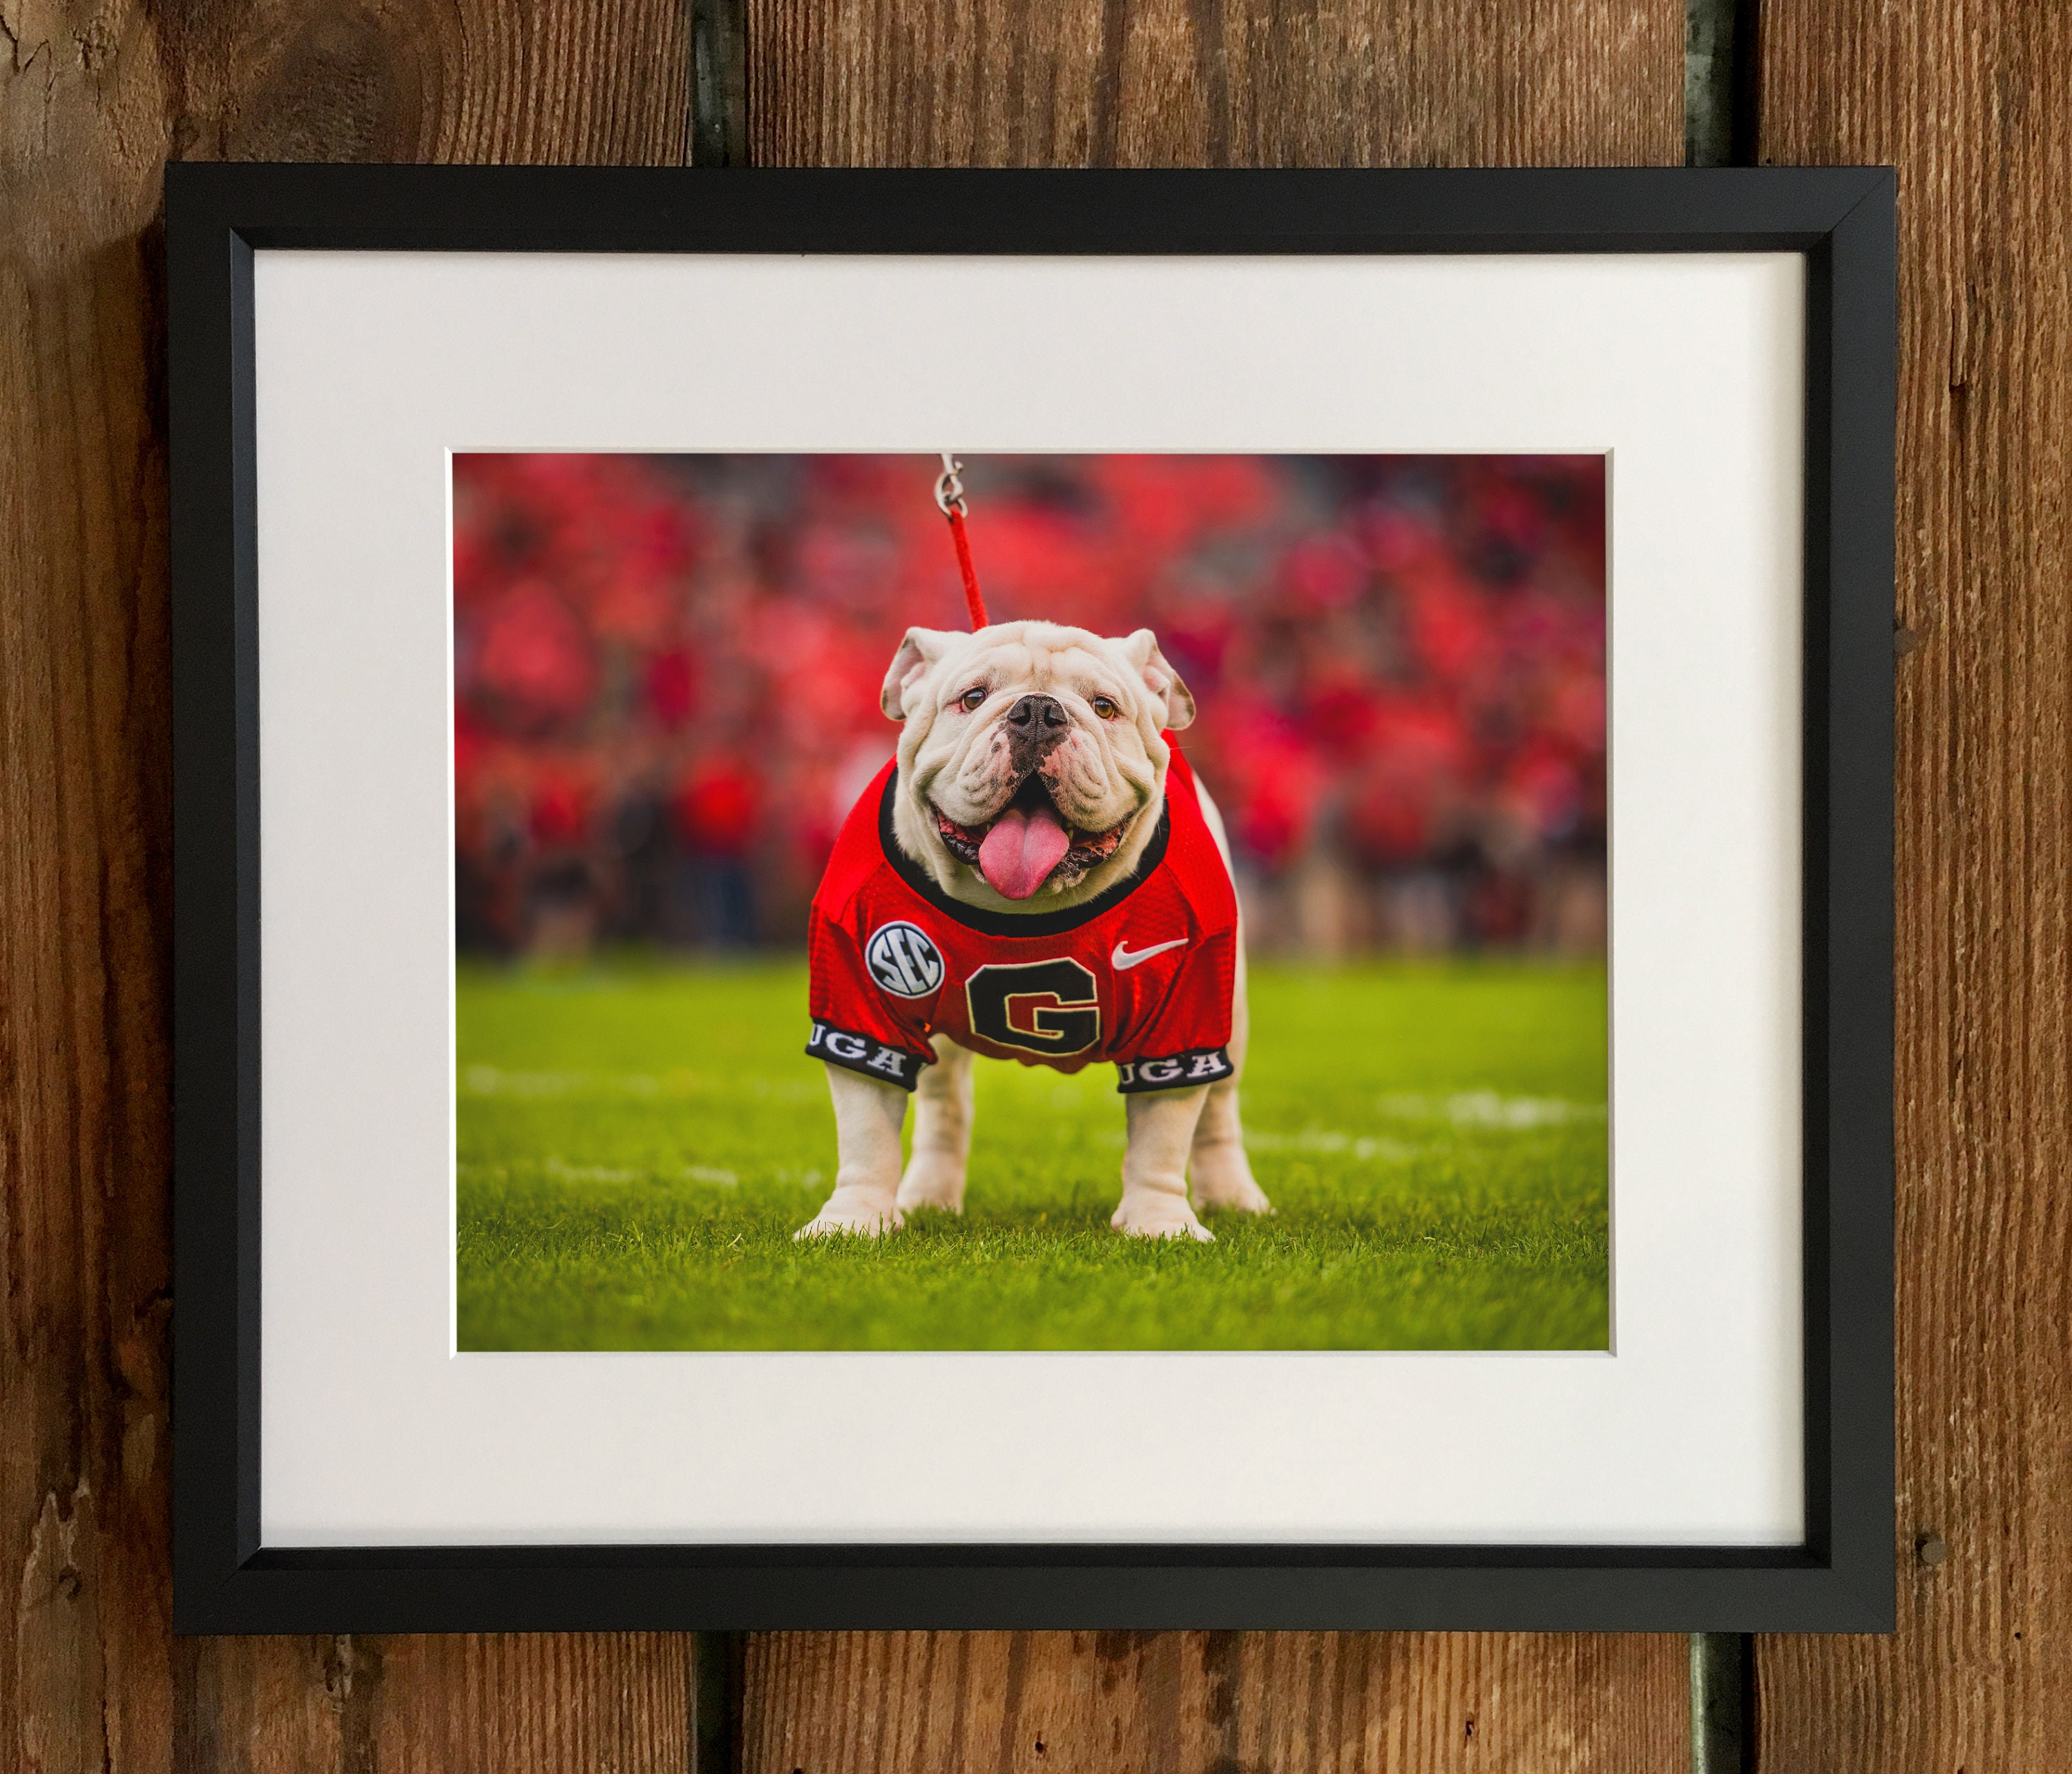 97+ Georgia Bulldog Home Decor   Georgia Bulldog Furniture ...